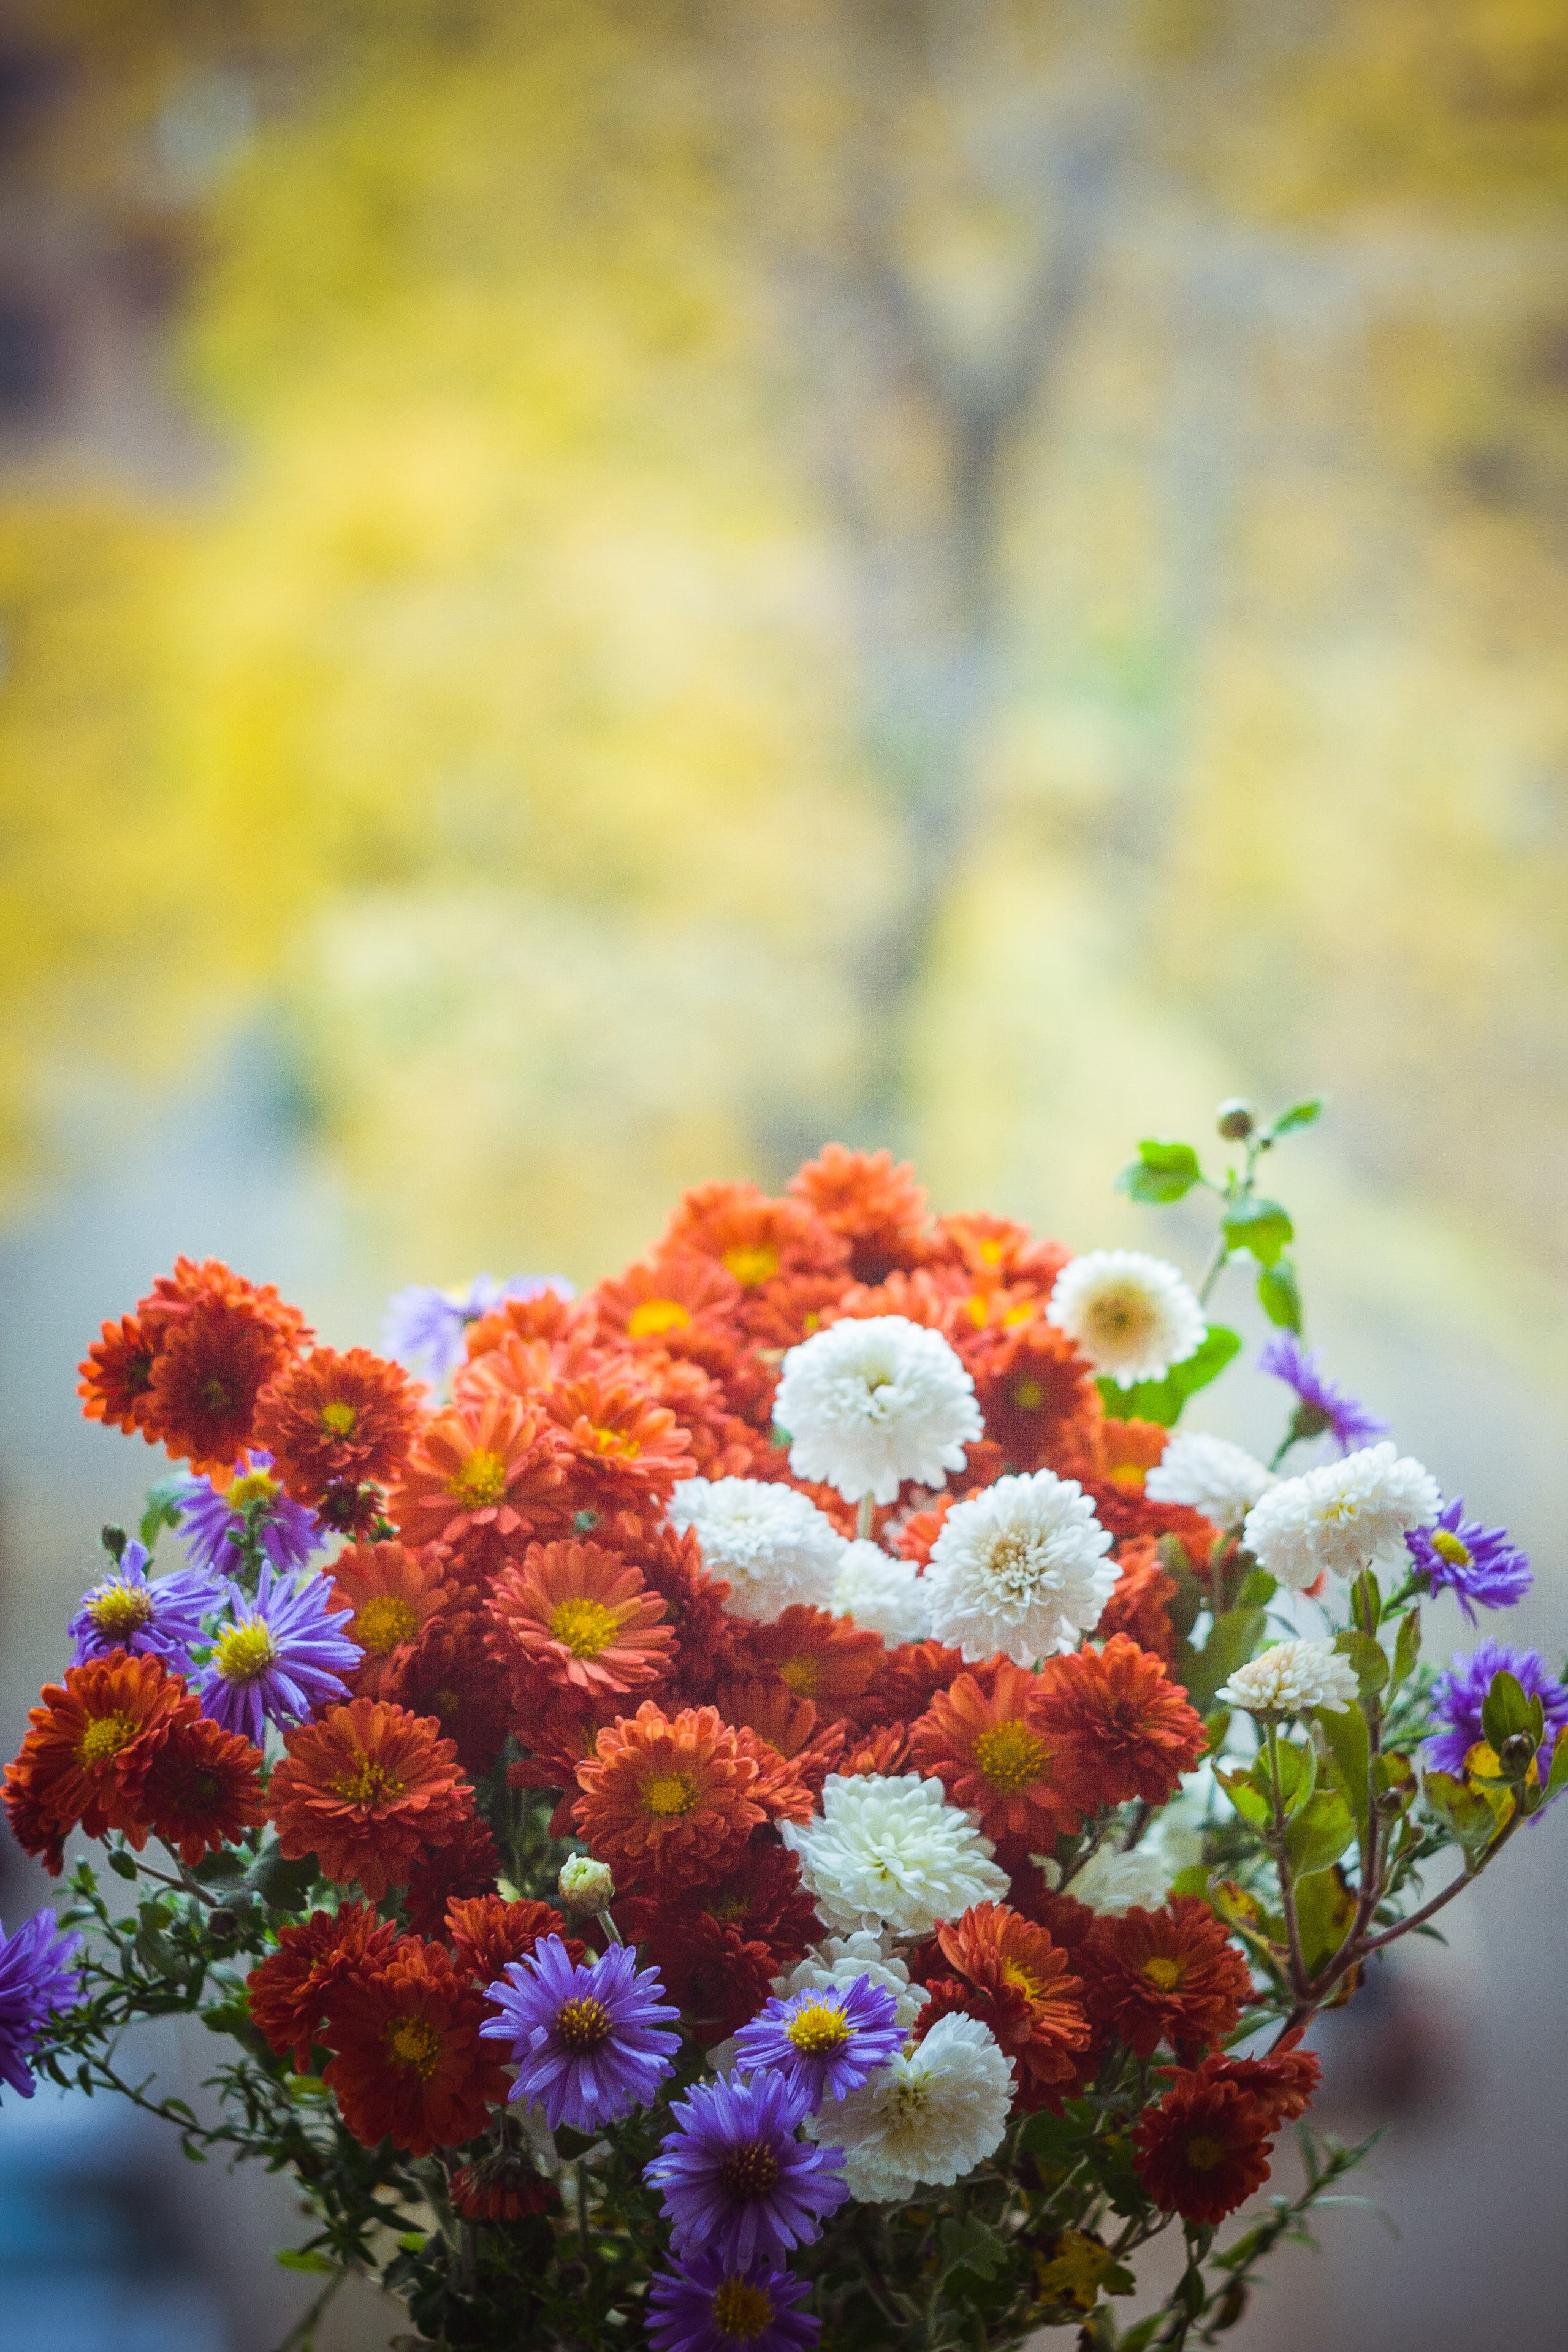 Close Up Photography Flowers In A Vase 183 Free Stock Photo